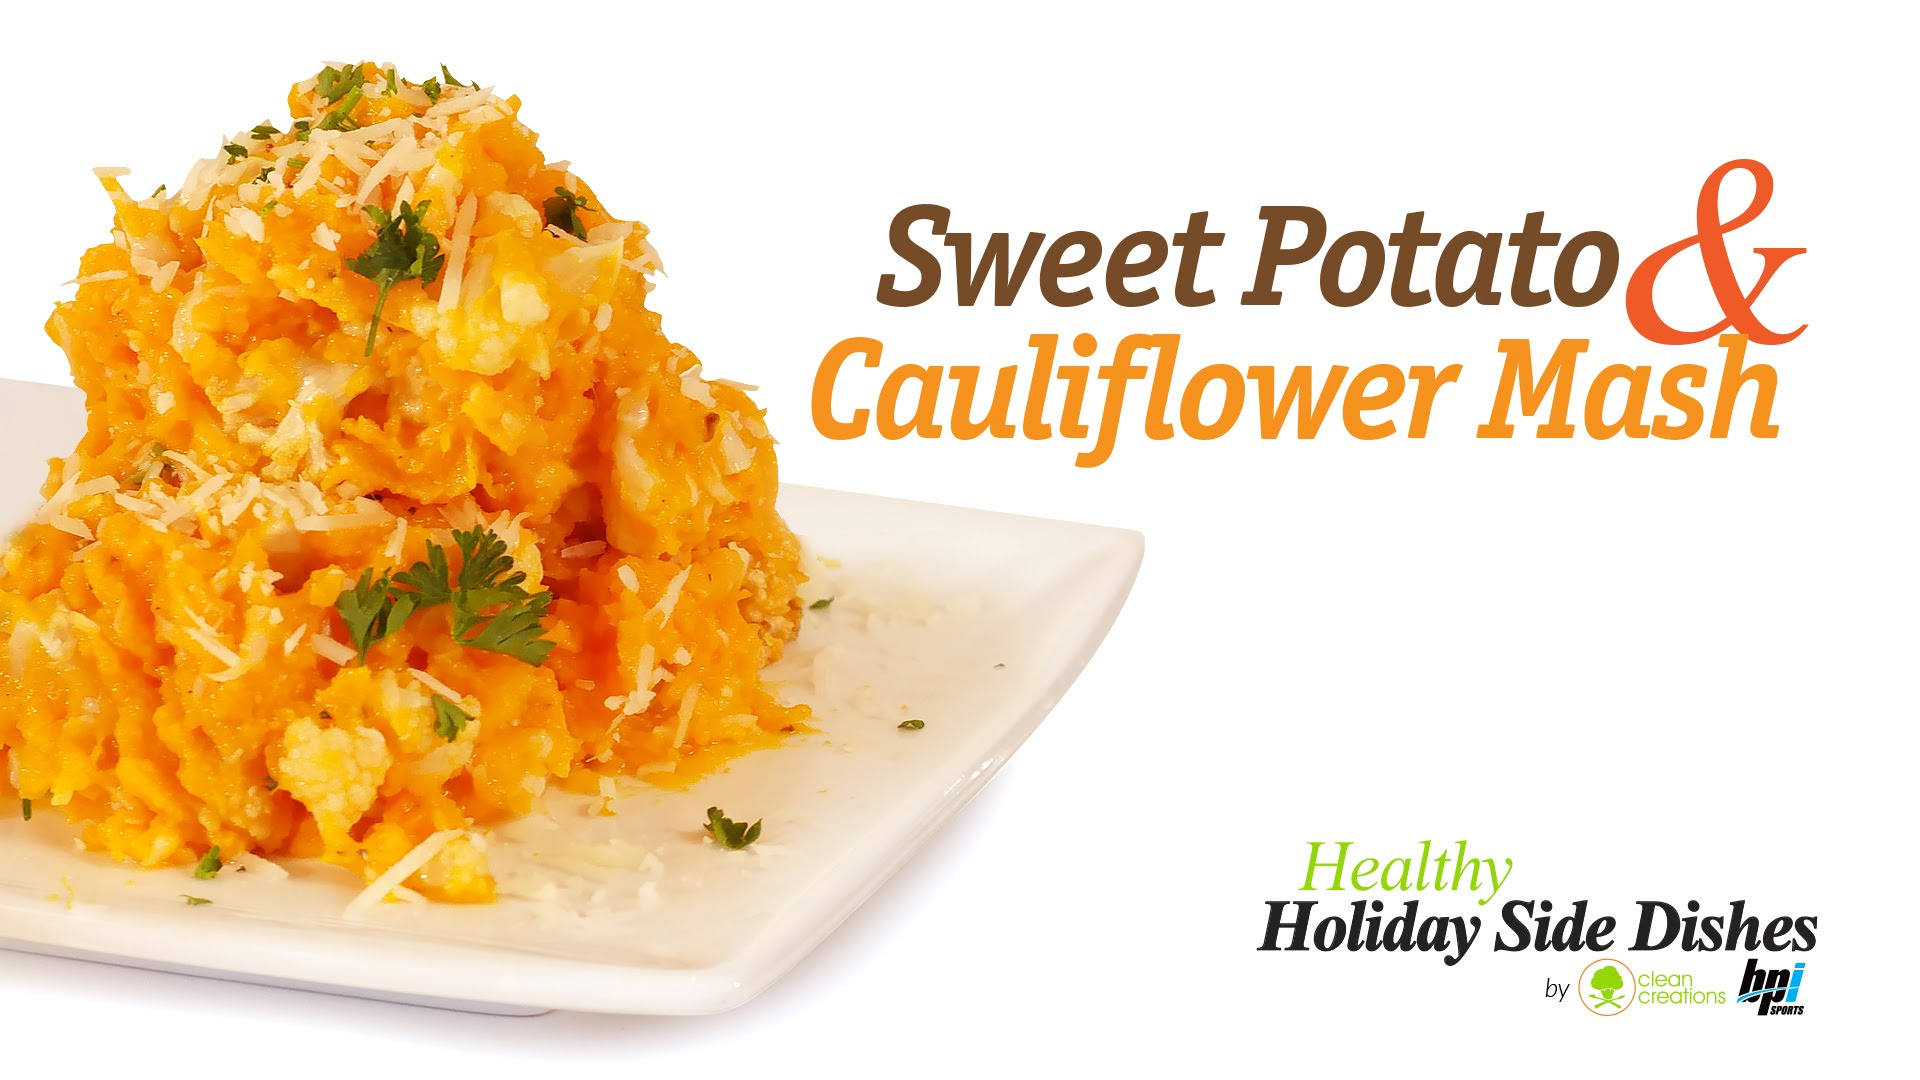 Recipe: Sweet Potato & Cauliflower Mash